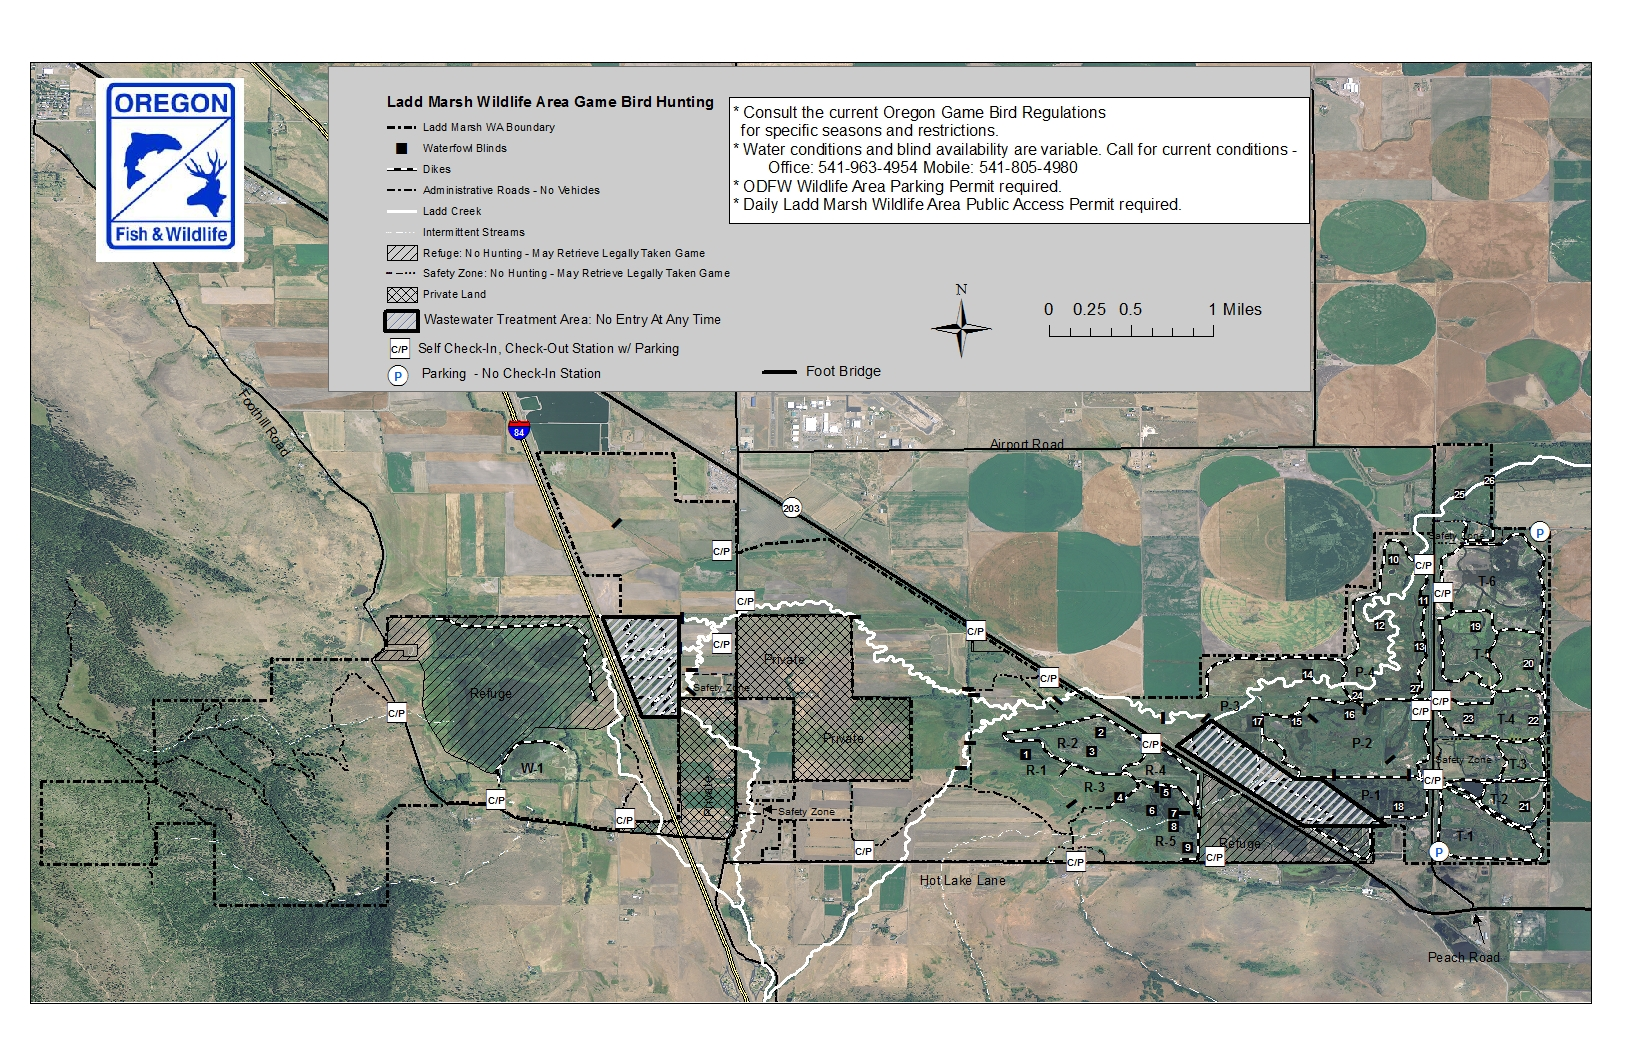 Game Bird Hunting Areas Map   Friends of Ladd Marsh